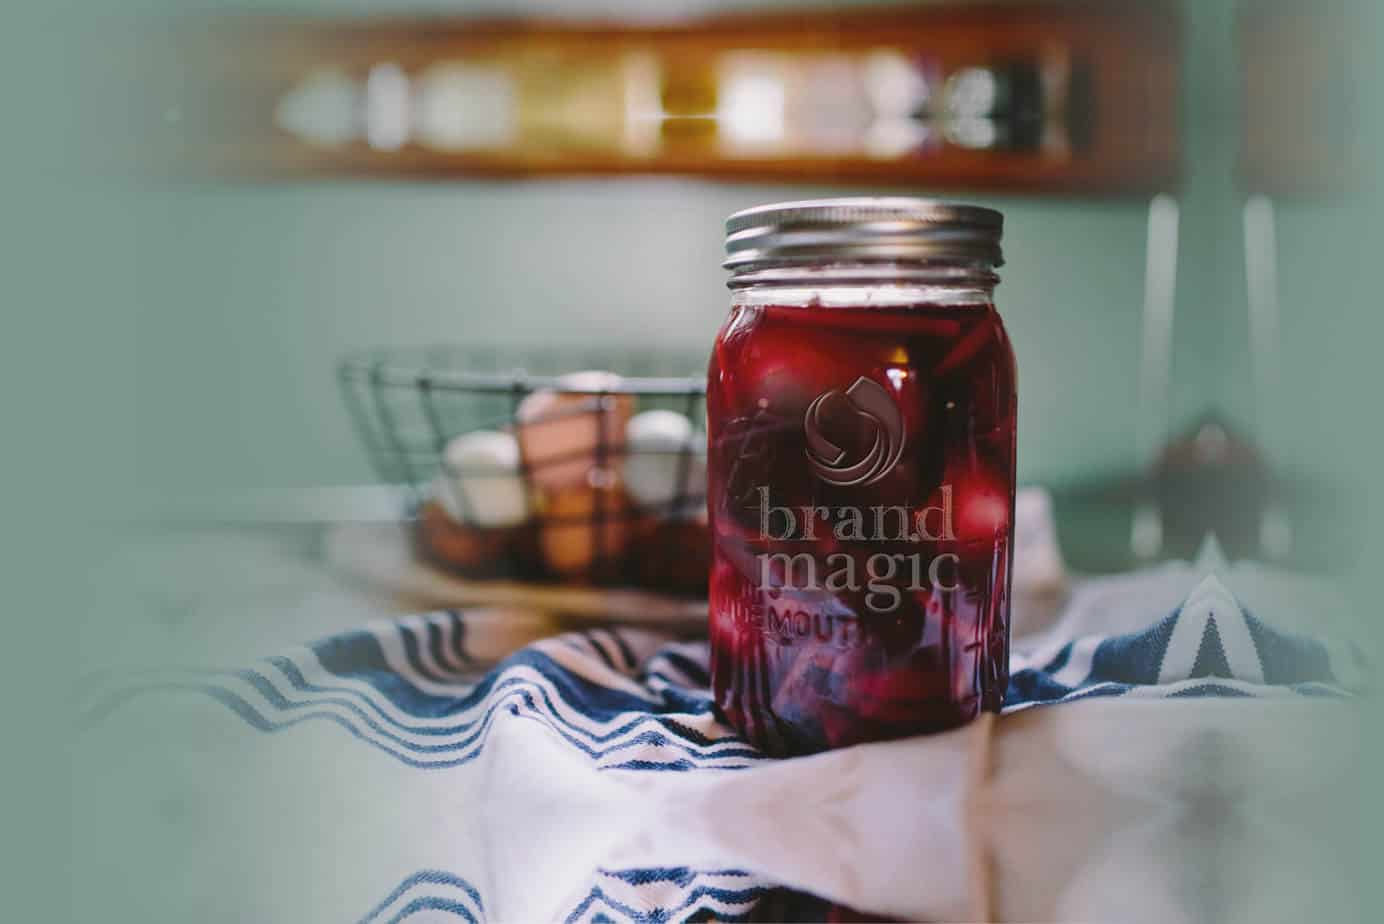 An image of a jam jar with the brand magic logo on, very design agency